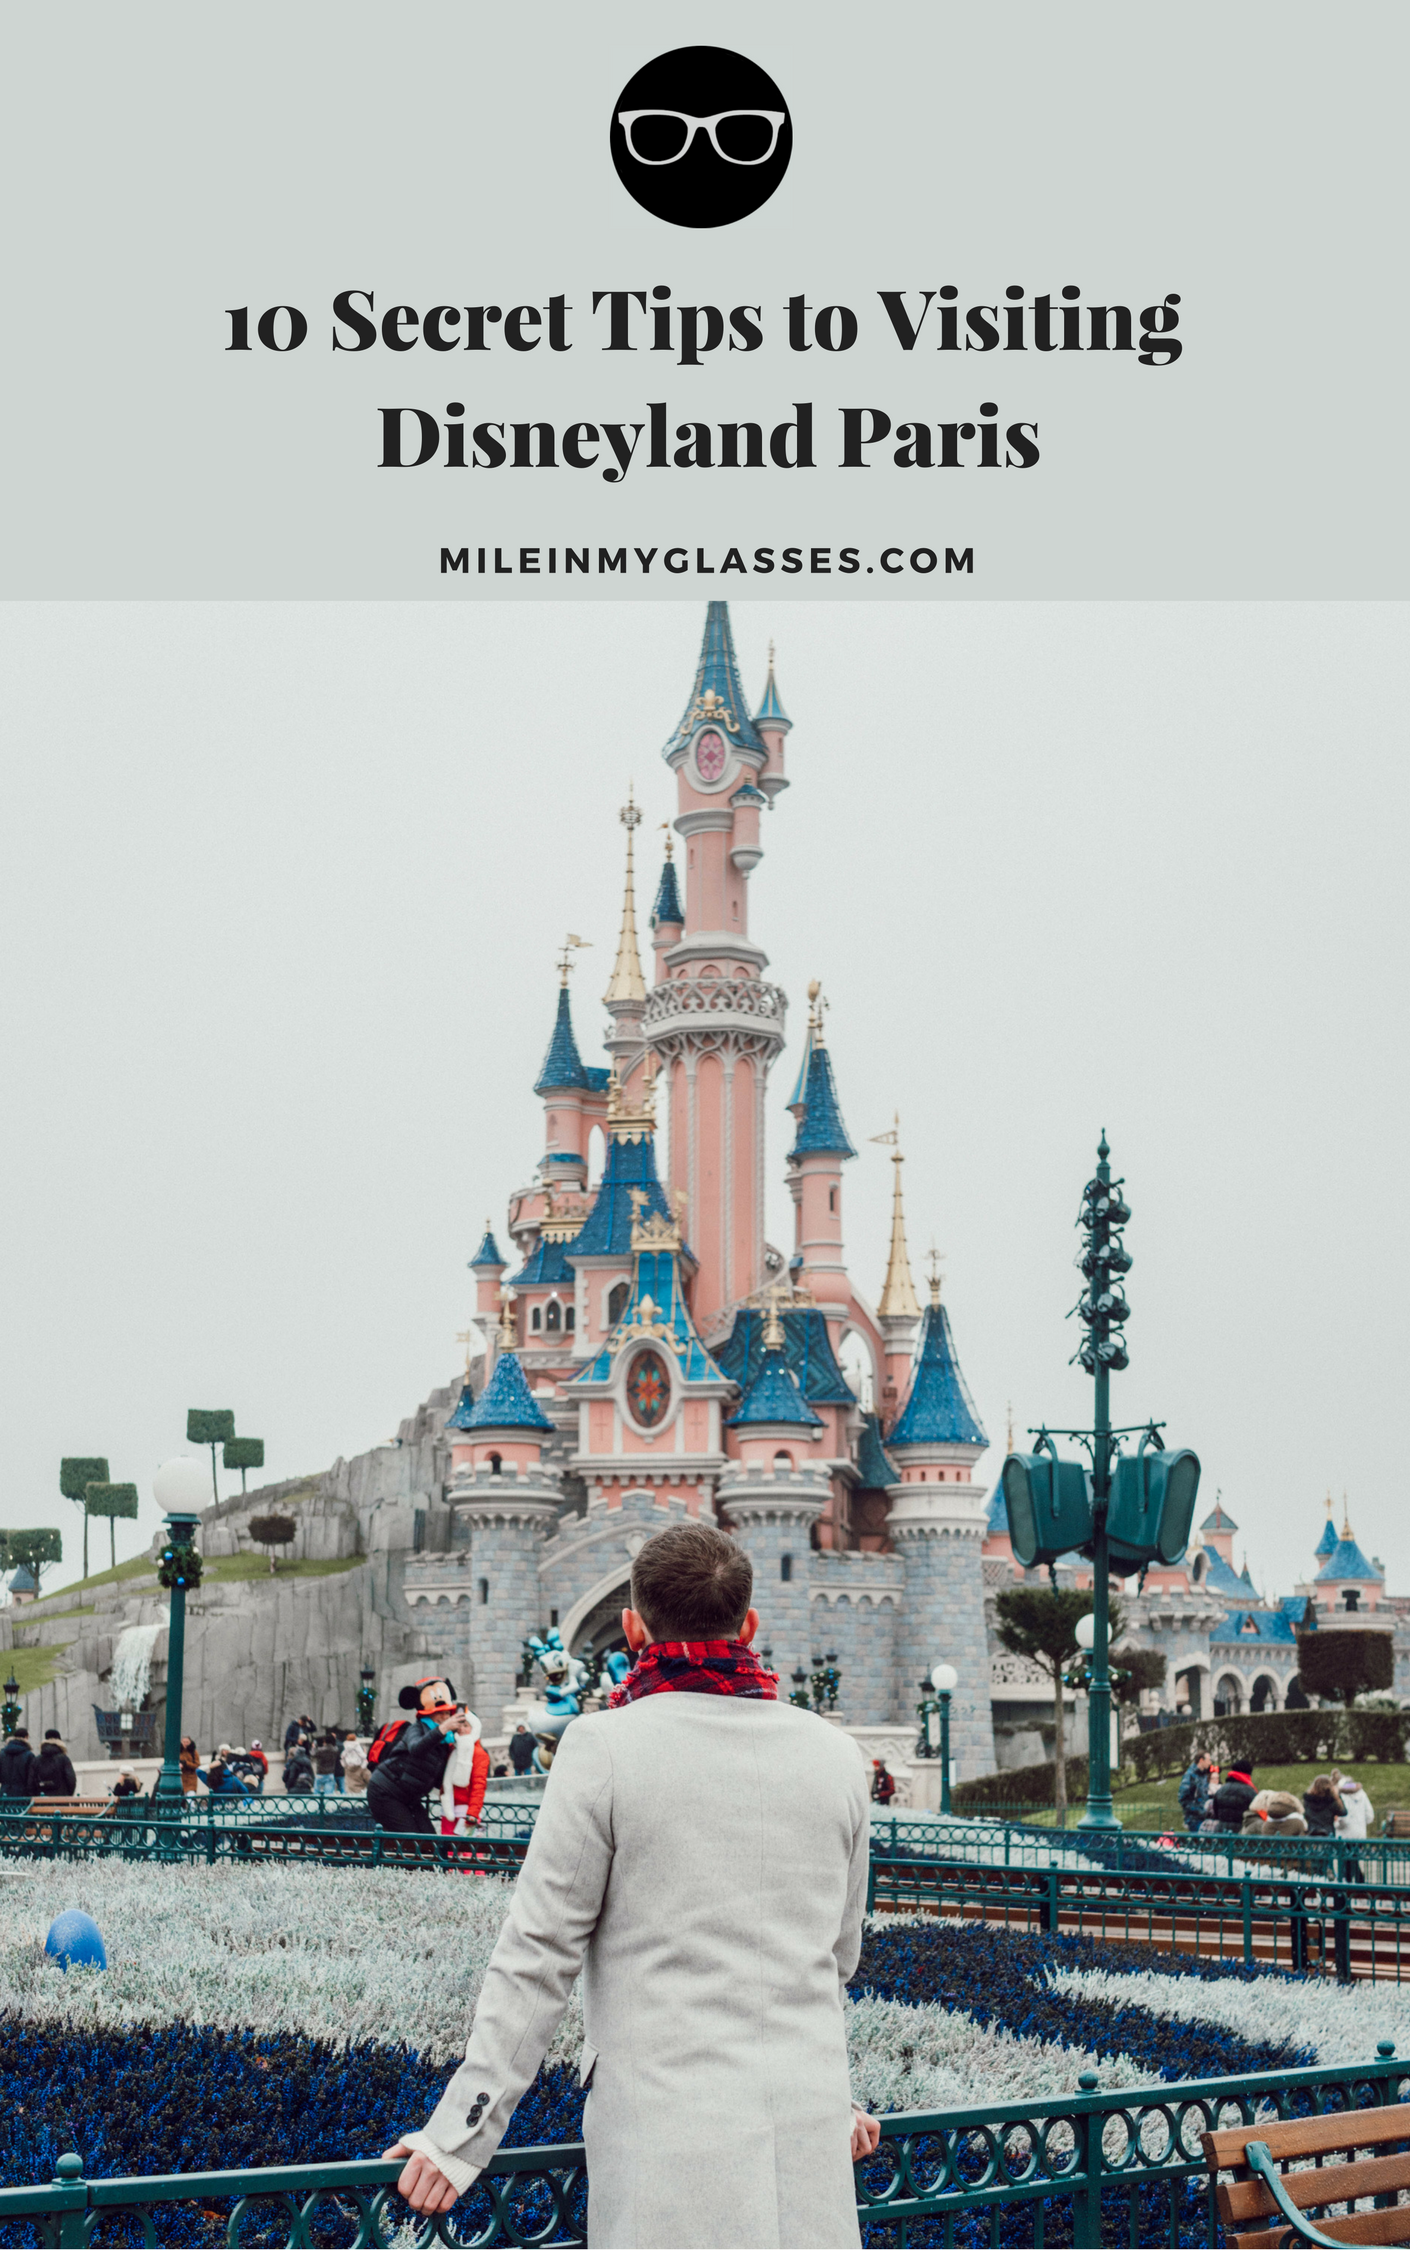 Disneyland Travel Packages  Tour Holiday